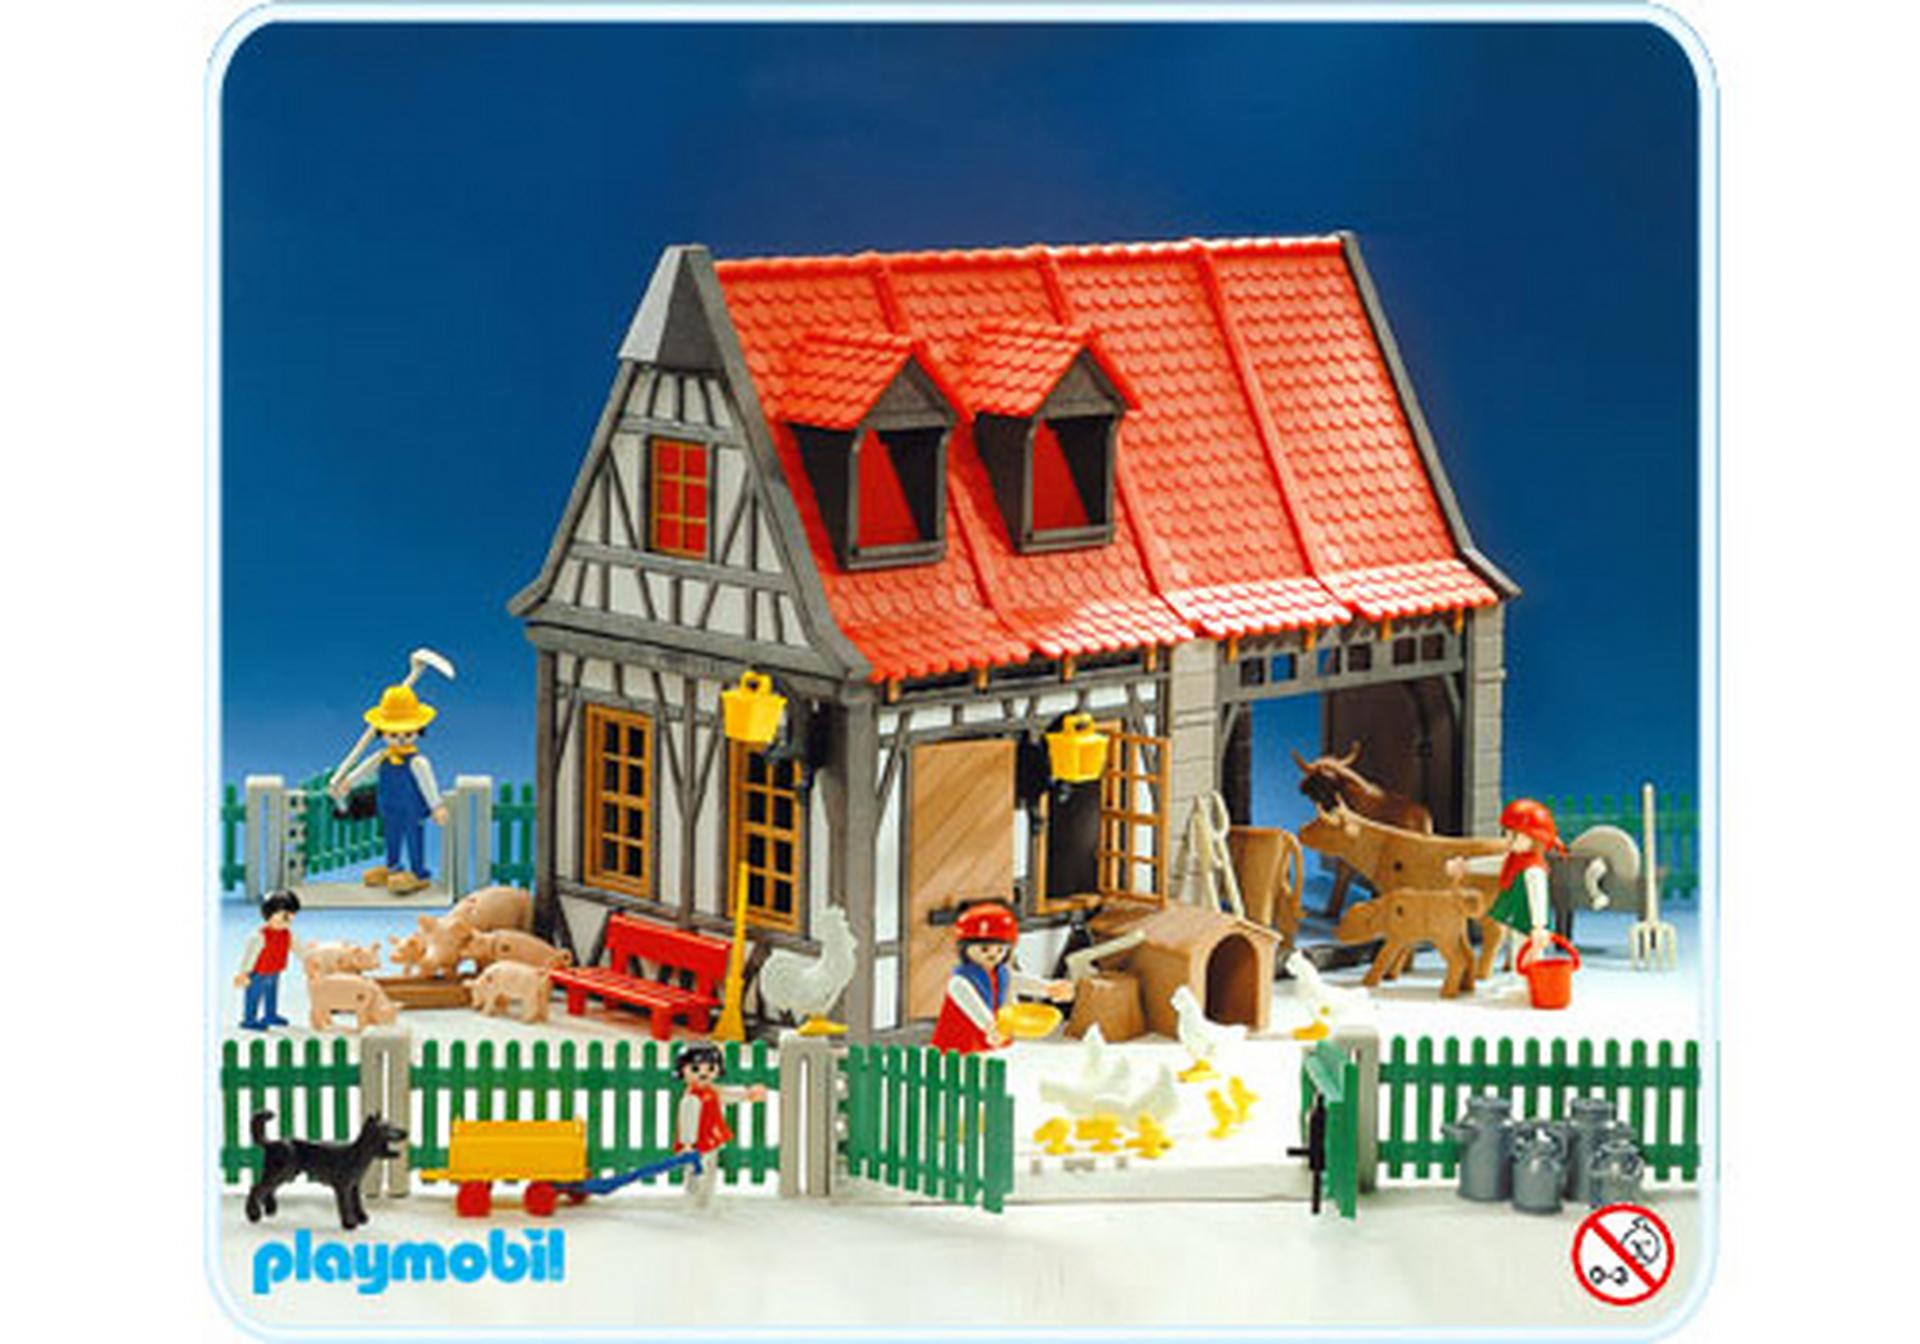 Ferme 3556 a playmobil suisse for Playmobil buanderie